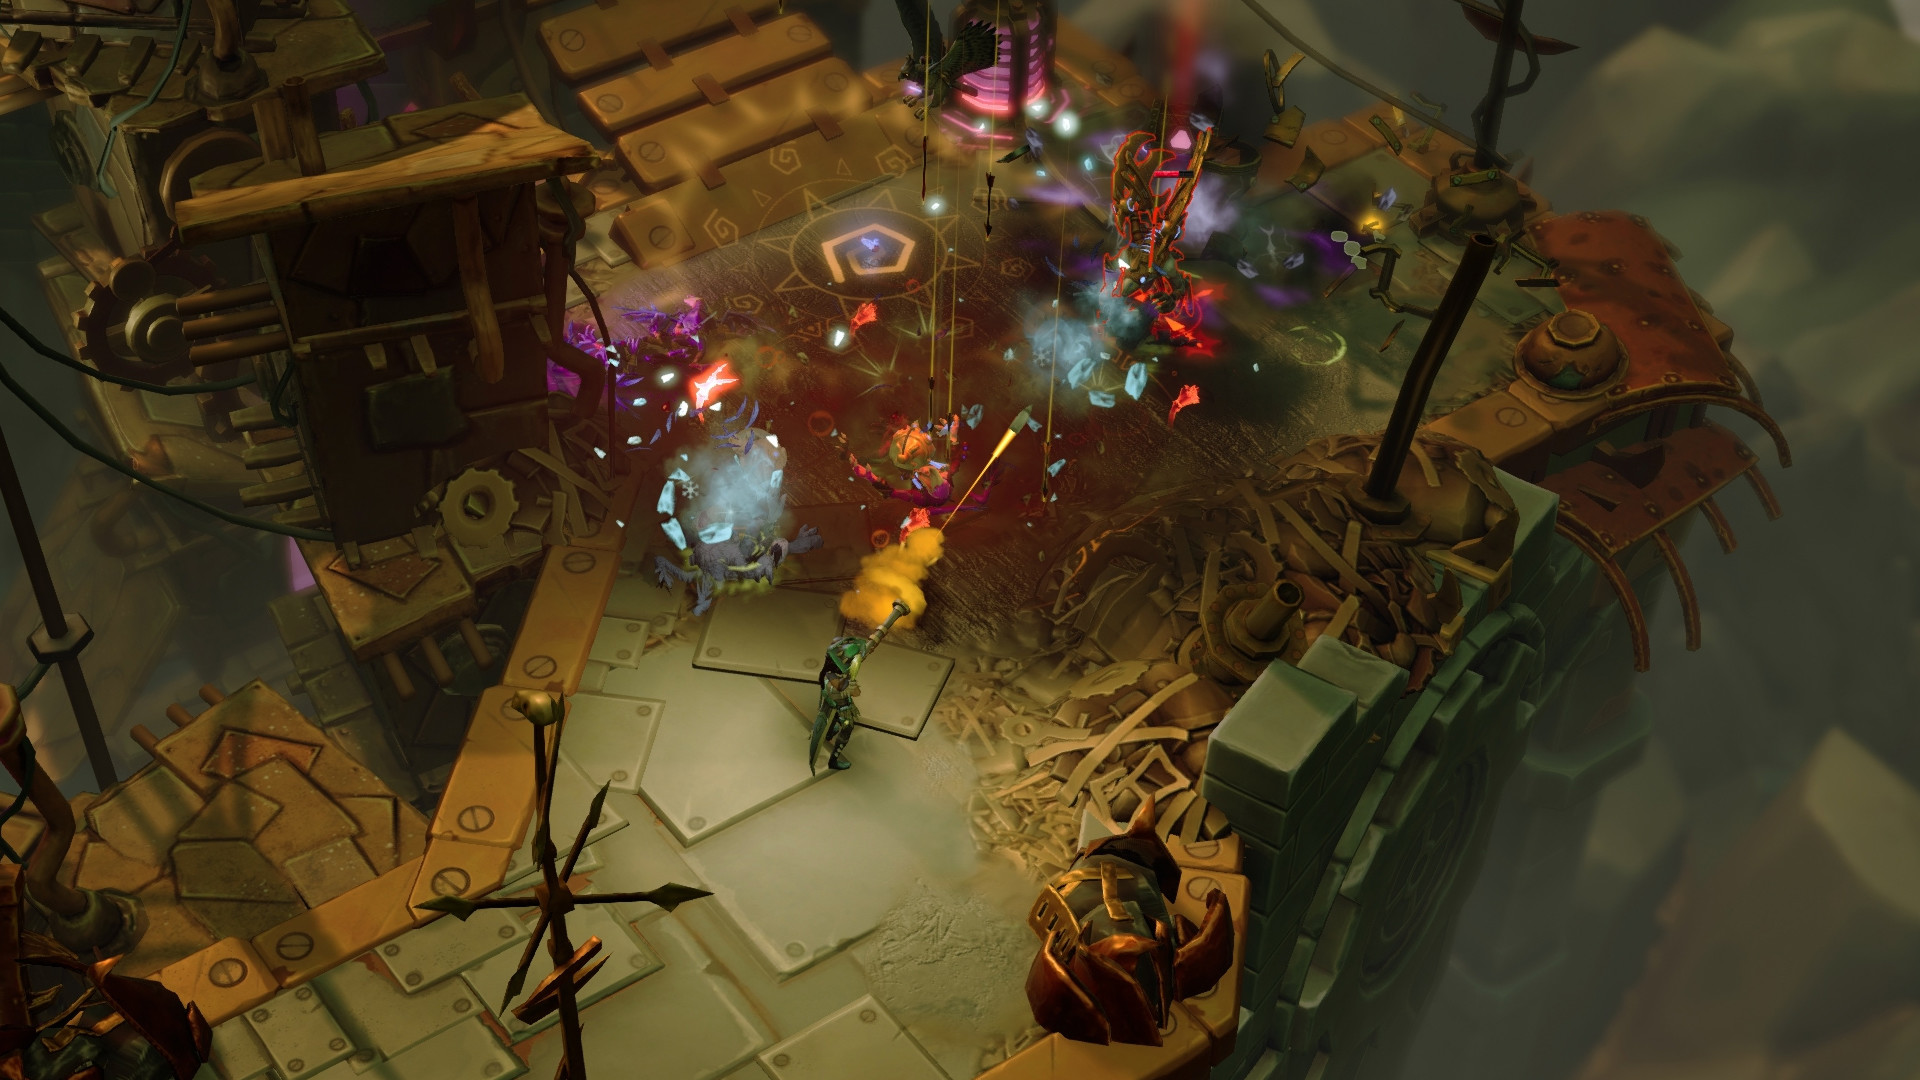 It's a screenshot from Torchlight III, it's a manky metal dungeon with a steampunk brown and off green/grey look. It's not very complimentary but there is a big fight going on so not all is lost.